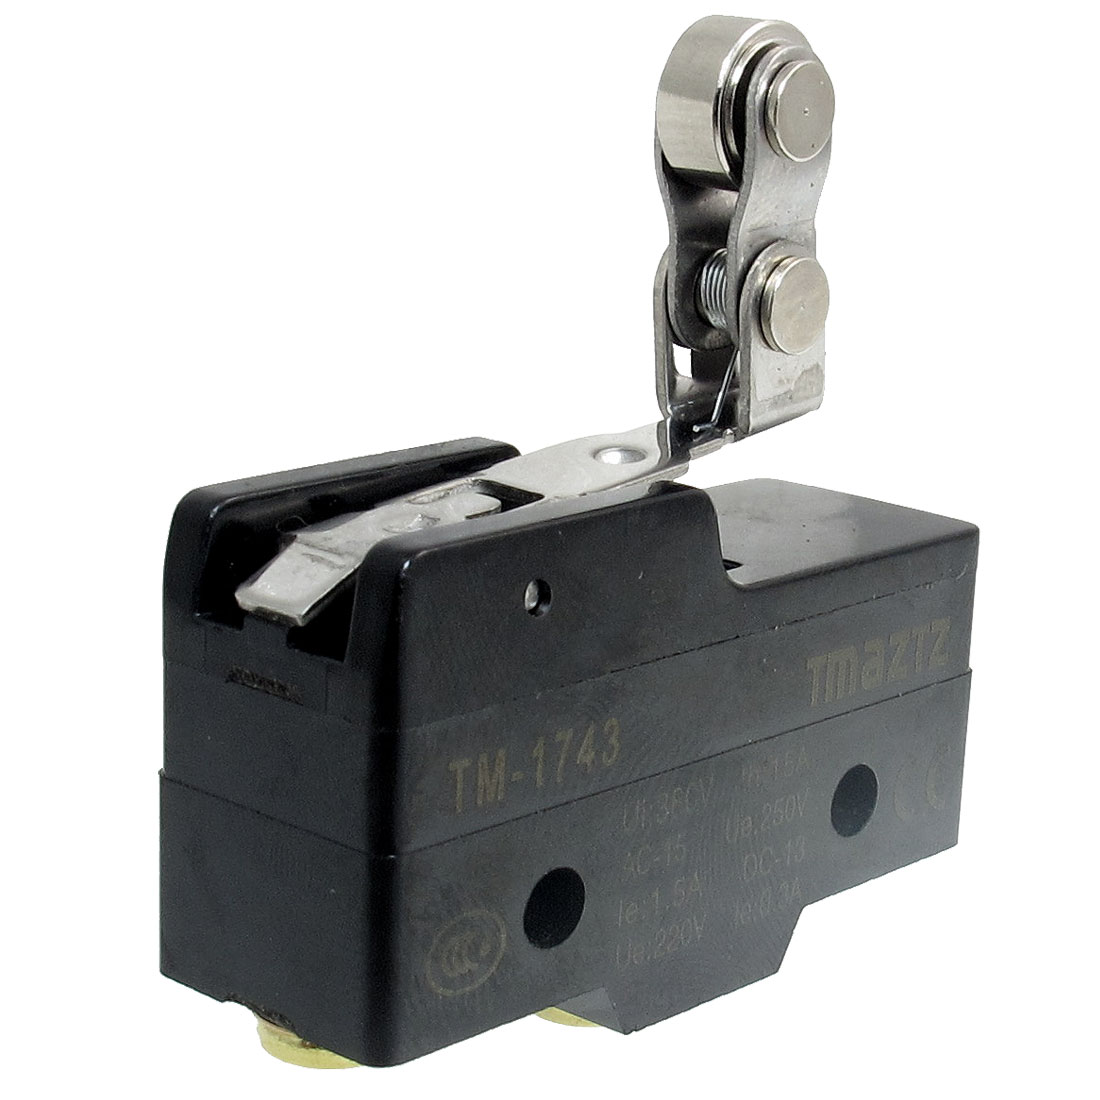 TM-1743 One-way Roller Lever Momentary Micro Limit Switch